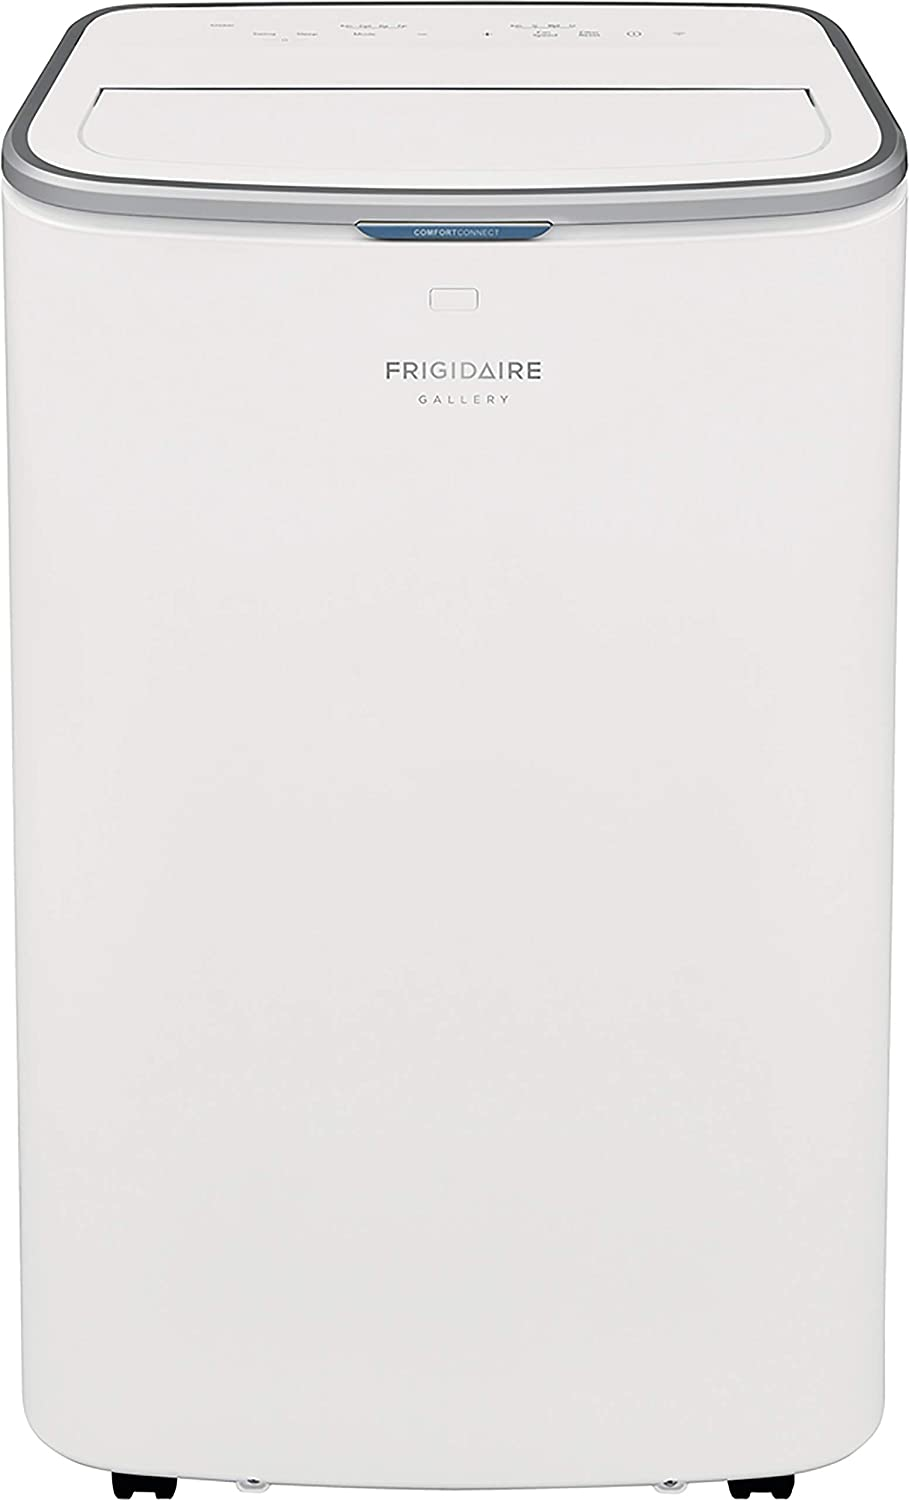 Frigidaire GHPC132AB1 Smart Portable Air Conditioner with Wifi Control, White